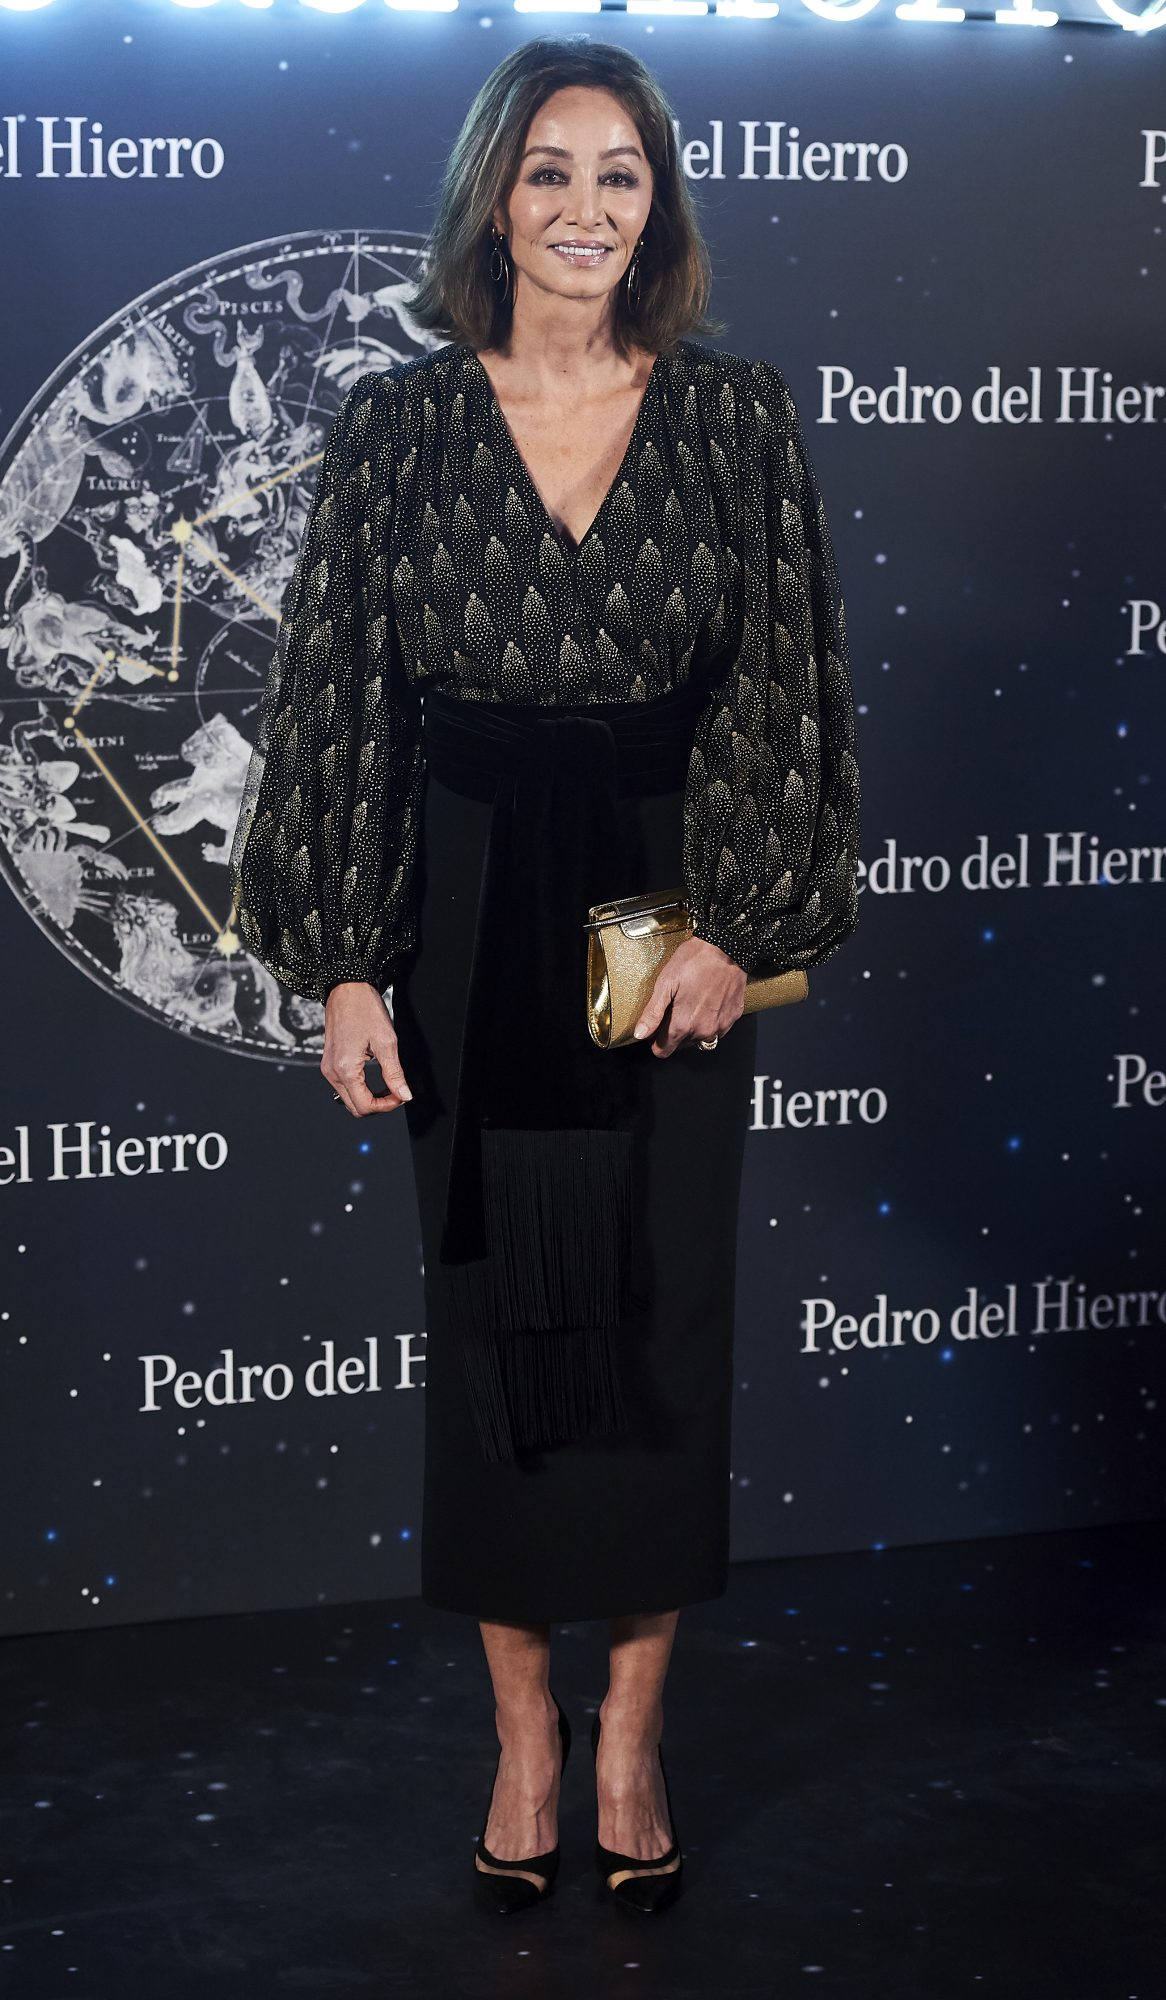 Pedro Del Hierro - Front Row - Mercedes Benz Fashion Week Madrid Autumn/Winter 2020-21